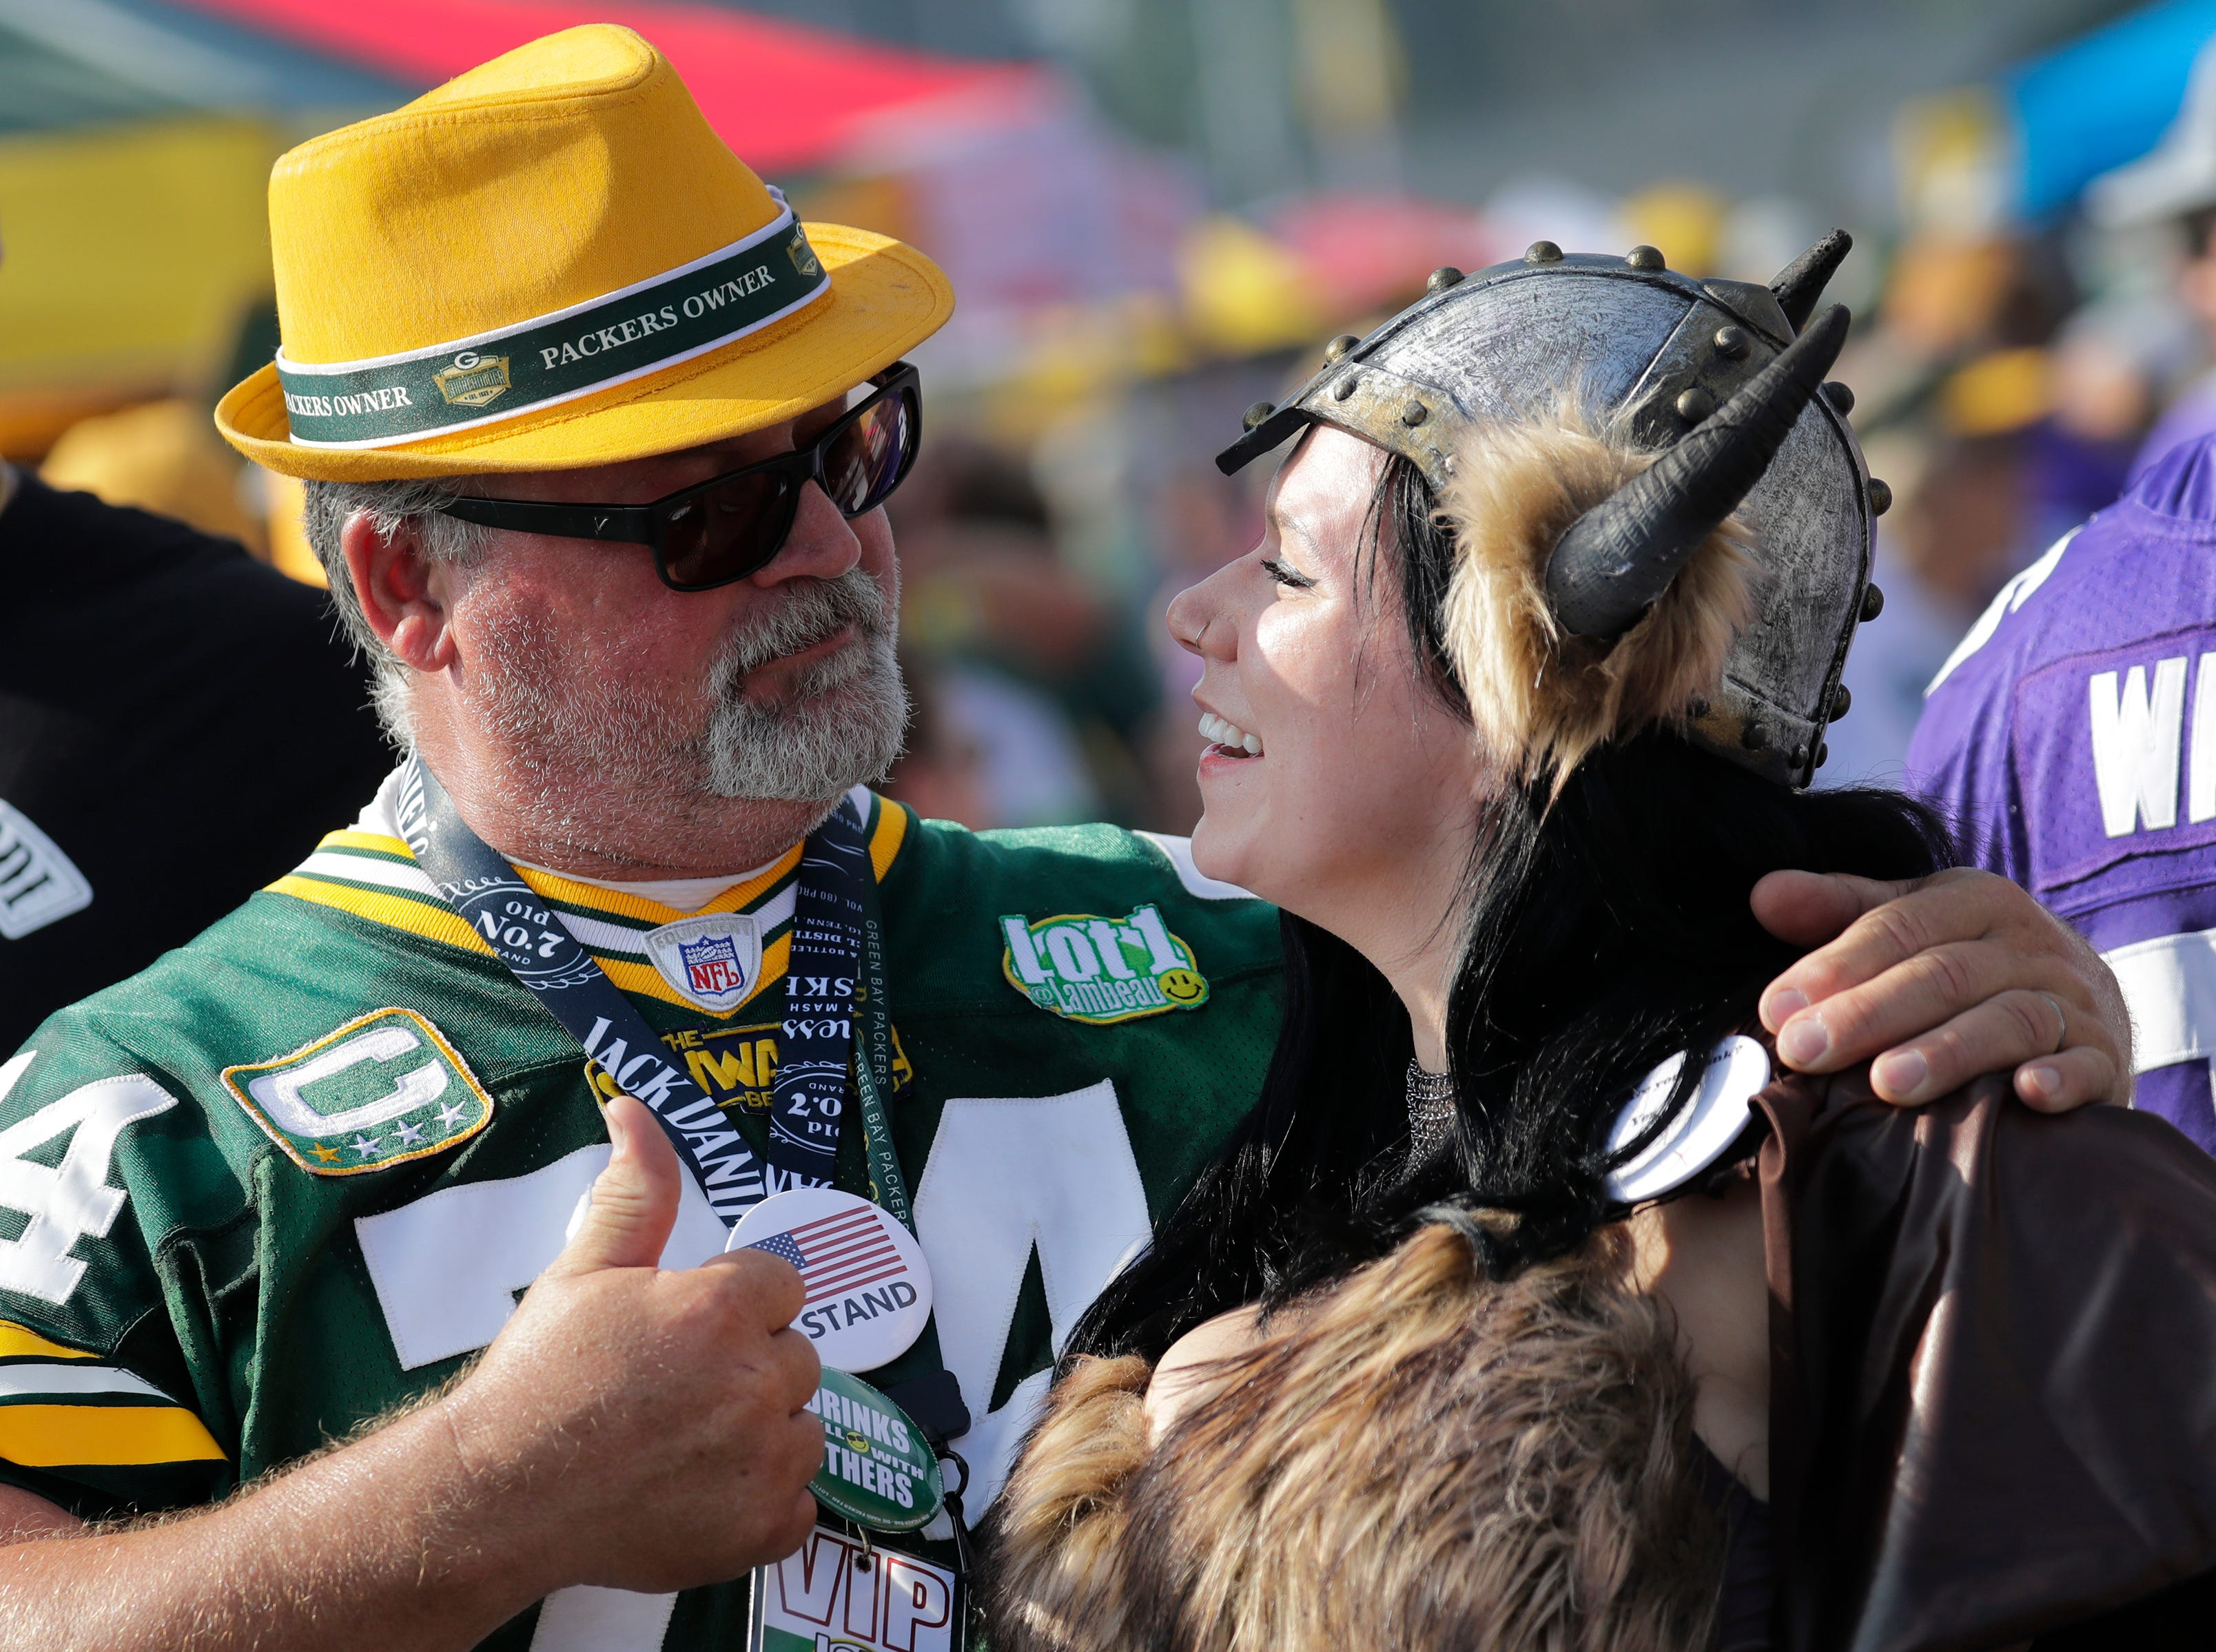 Scott Schwartz, left, of Pulaski, WI, and  Amber Reynolds of Minneapolis, MN, hang out prior to the Green Bay Packers playing against the Minnesota Vikings Sunday, Sept. 16, 2018, at Lambeau Field in Green Bay, Wis. Dan Powers/USA TODAY NETWORK-Wisconsin